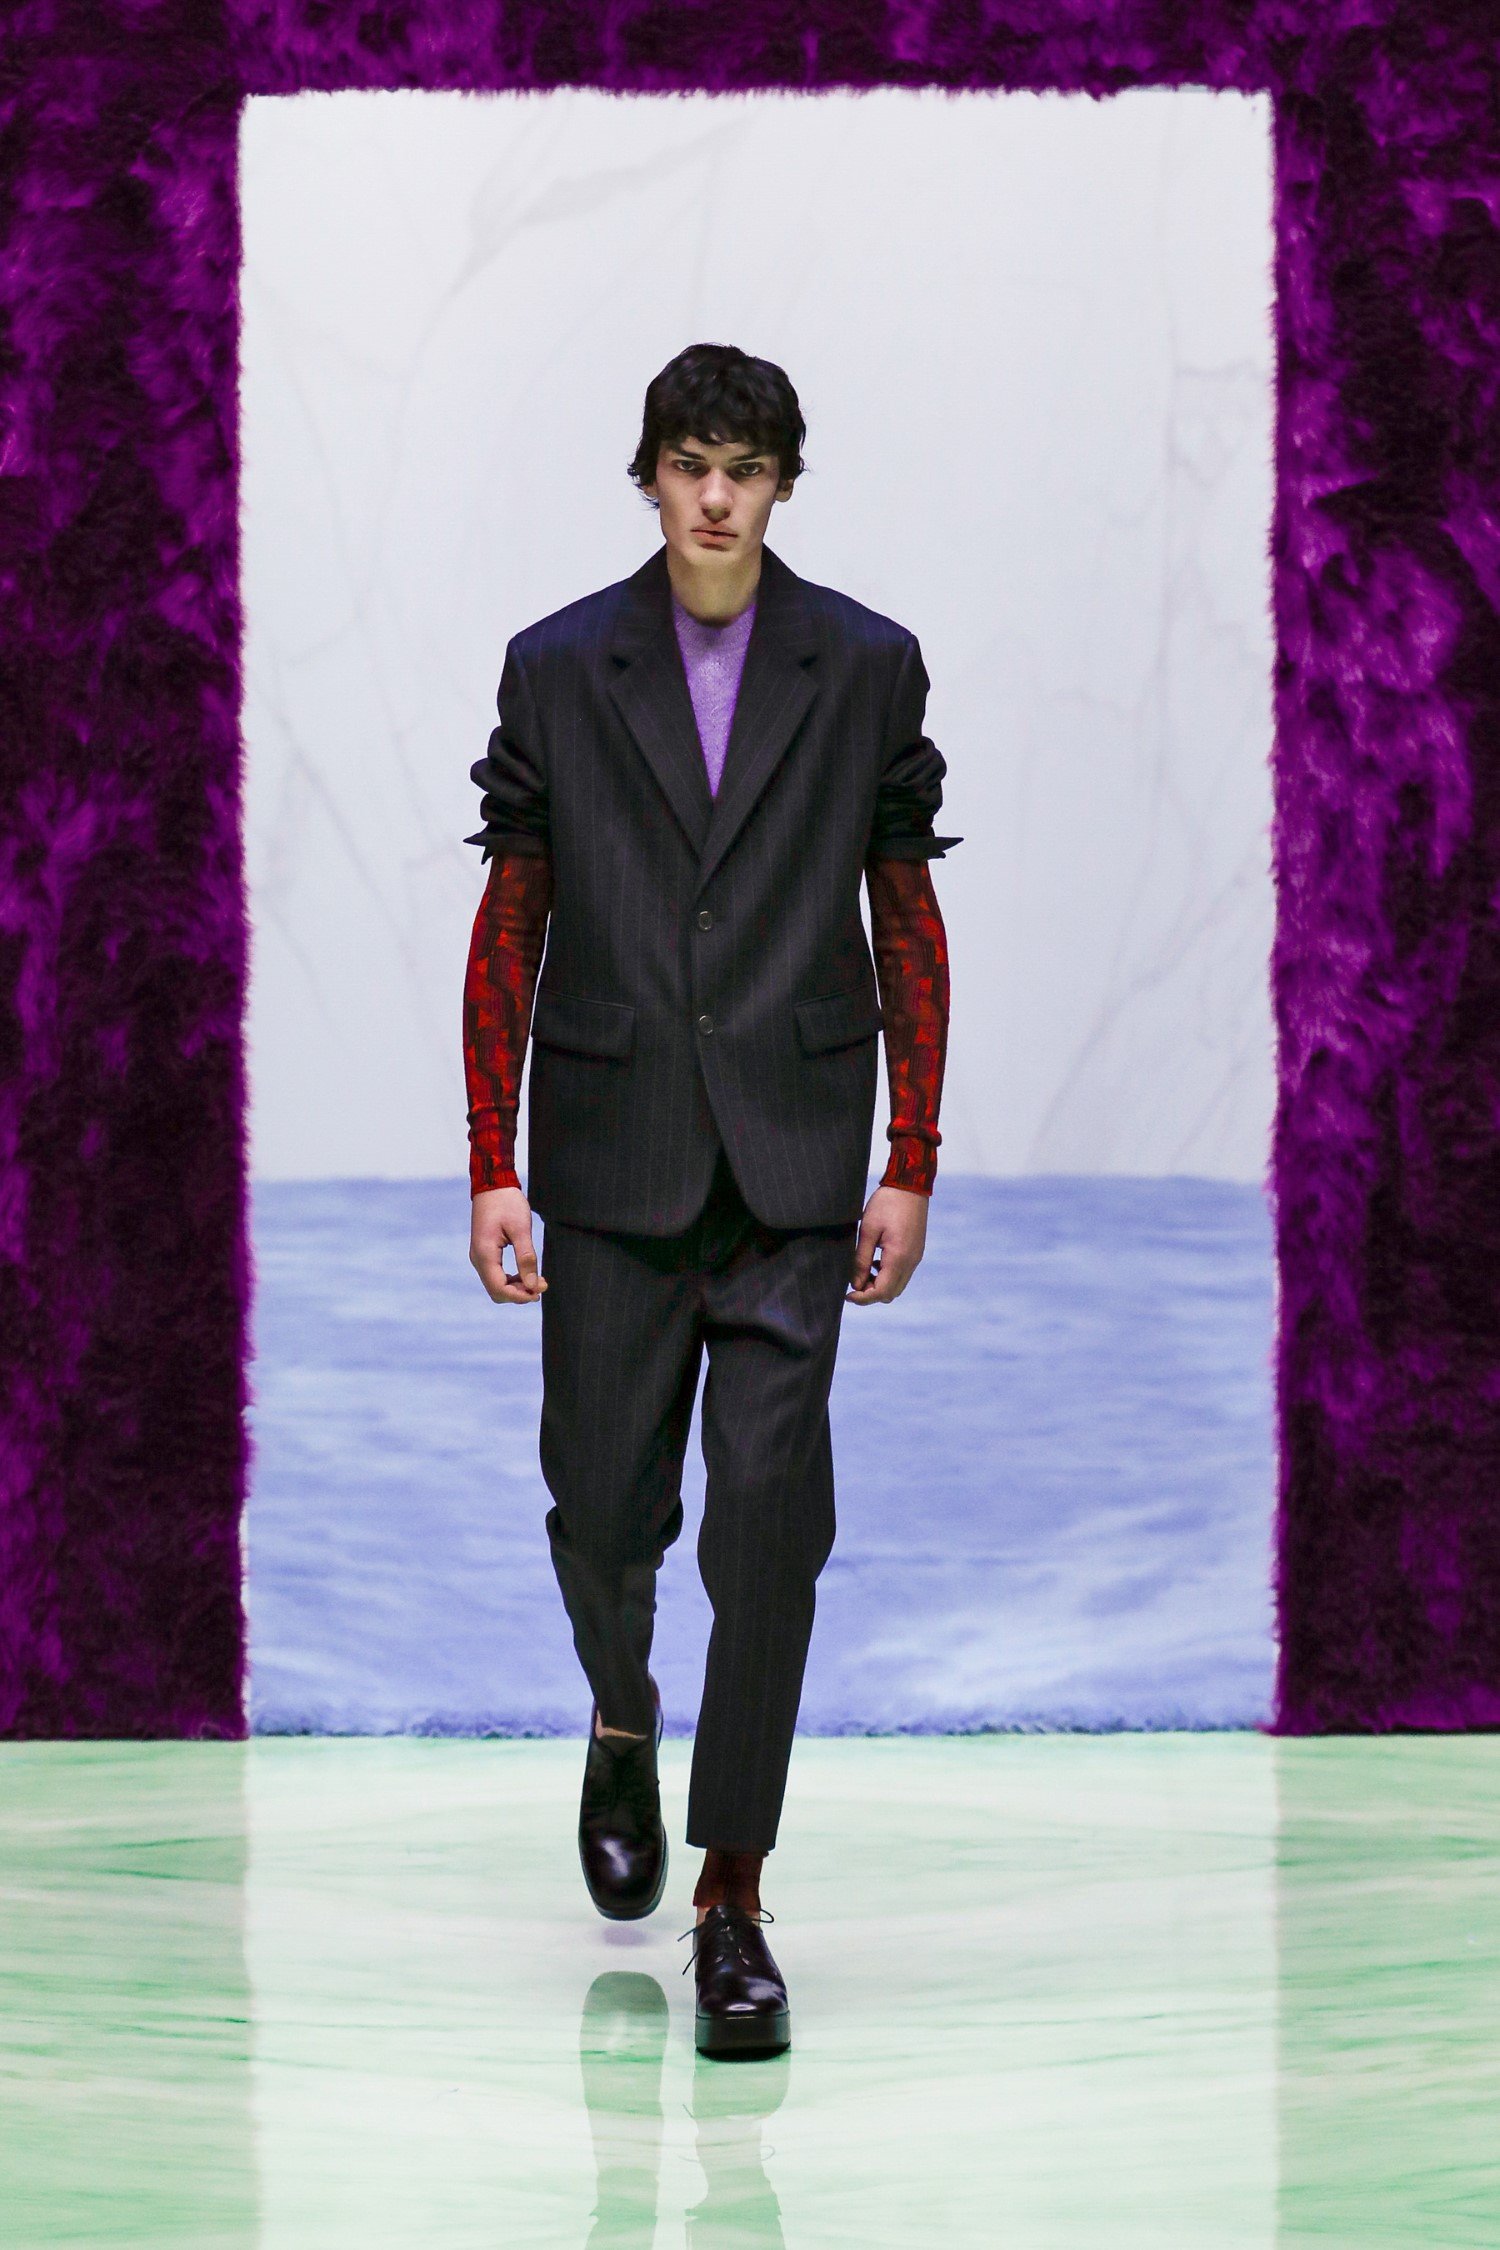 Prada Fall Winter 2021 – Milan Fashion Week Men's